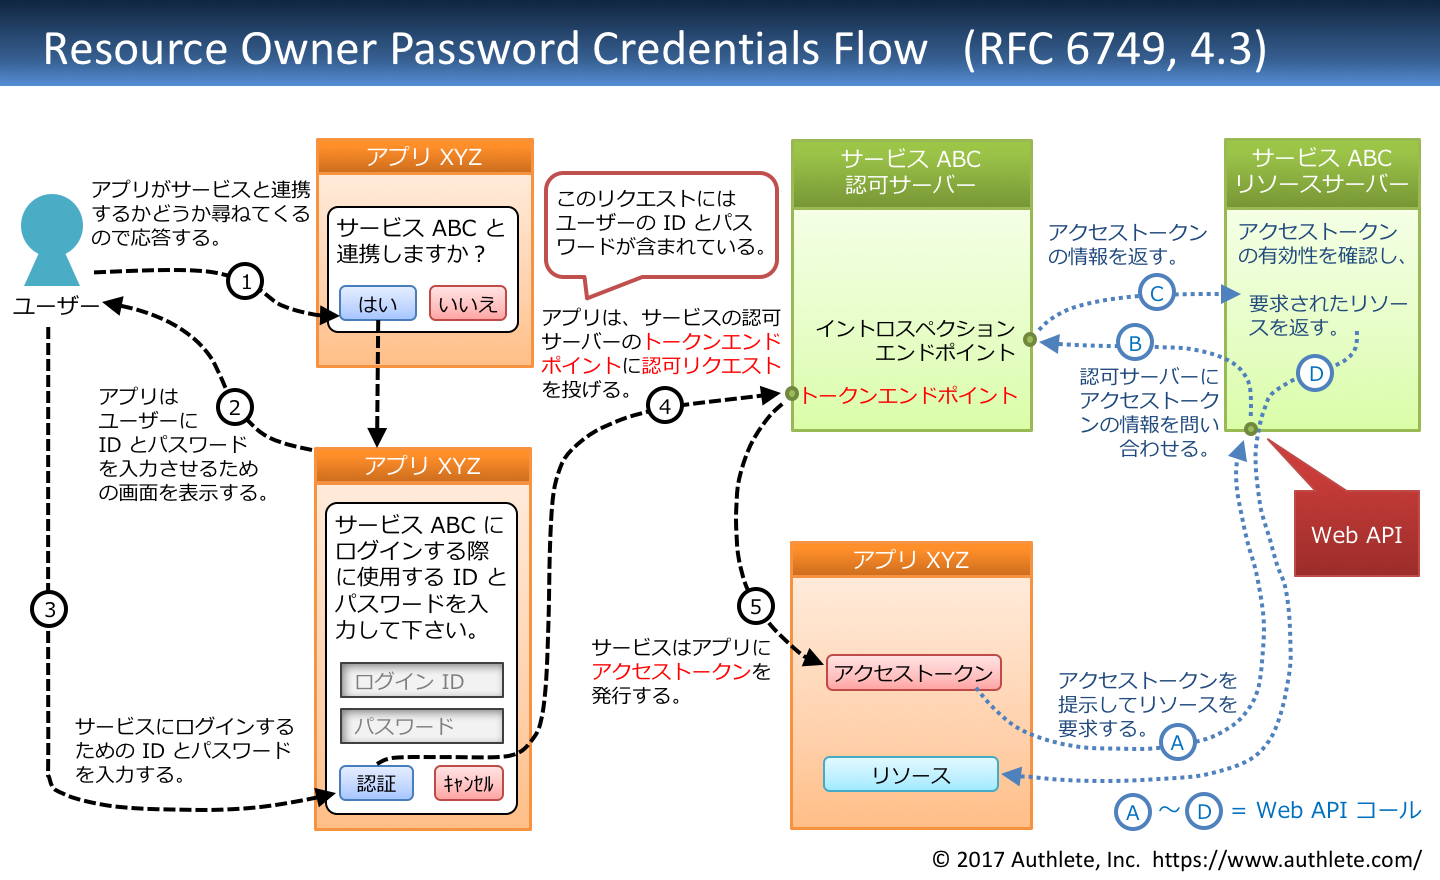 RFC6749-4_3-resource_owner_password_credentials_flow-Japanese.png